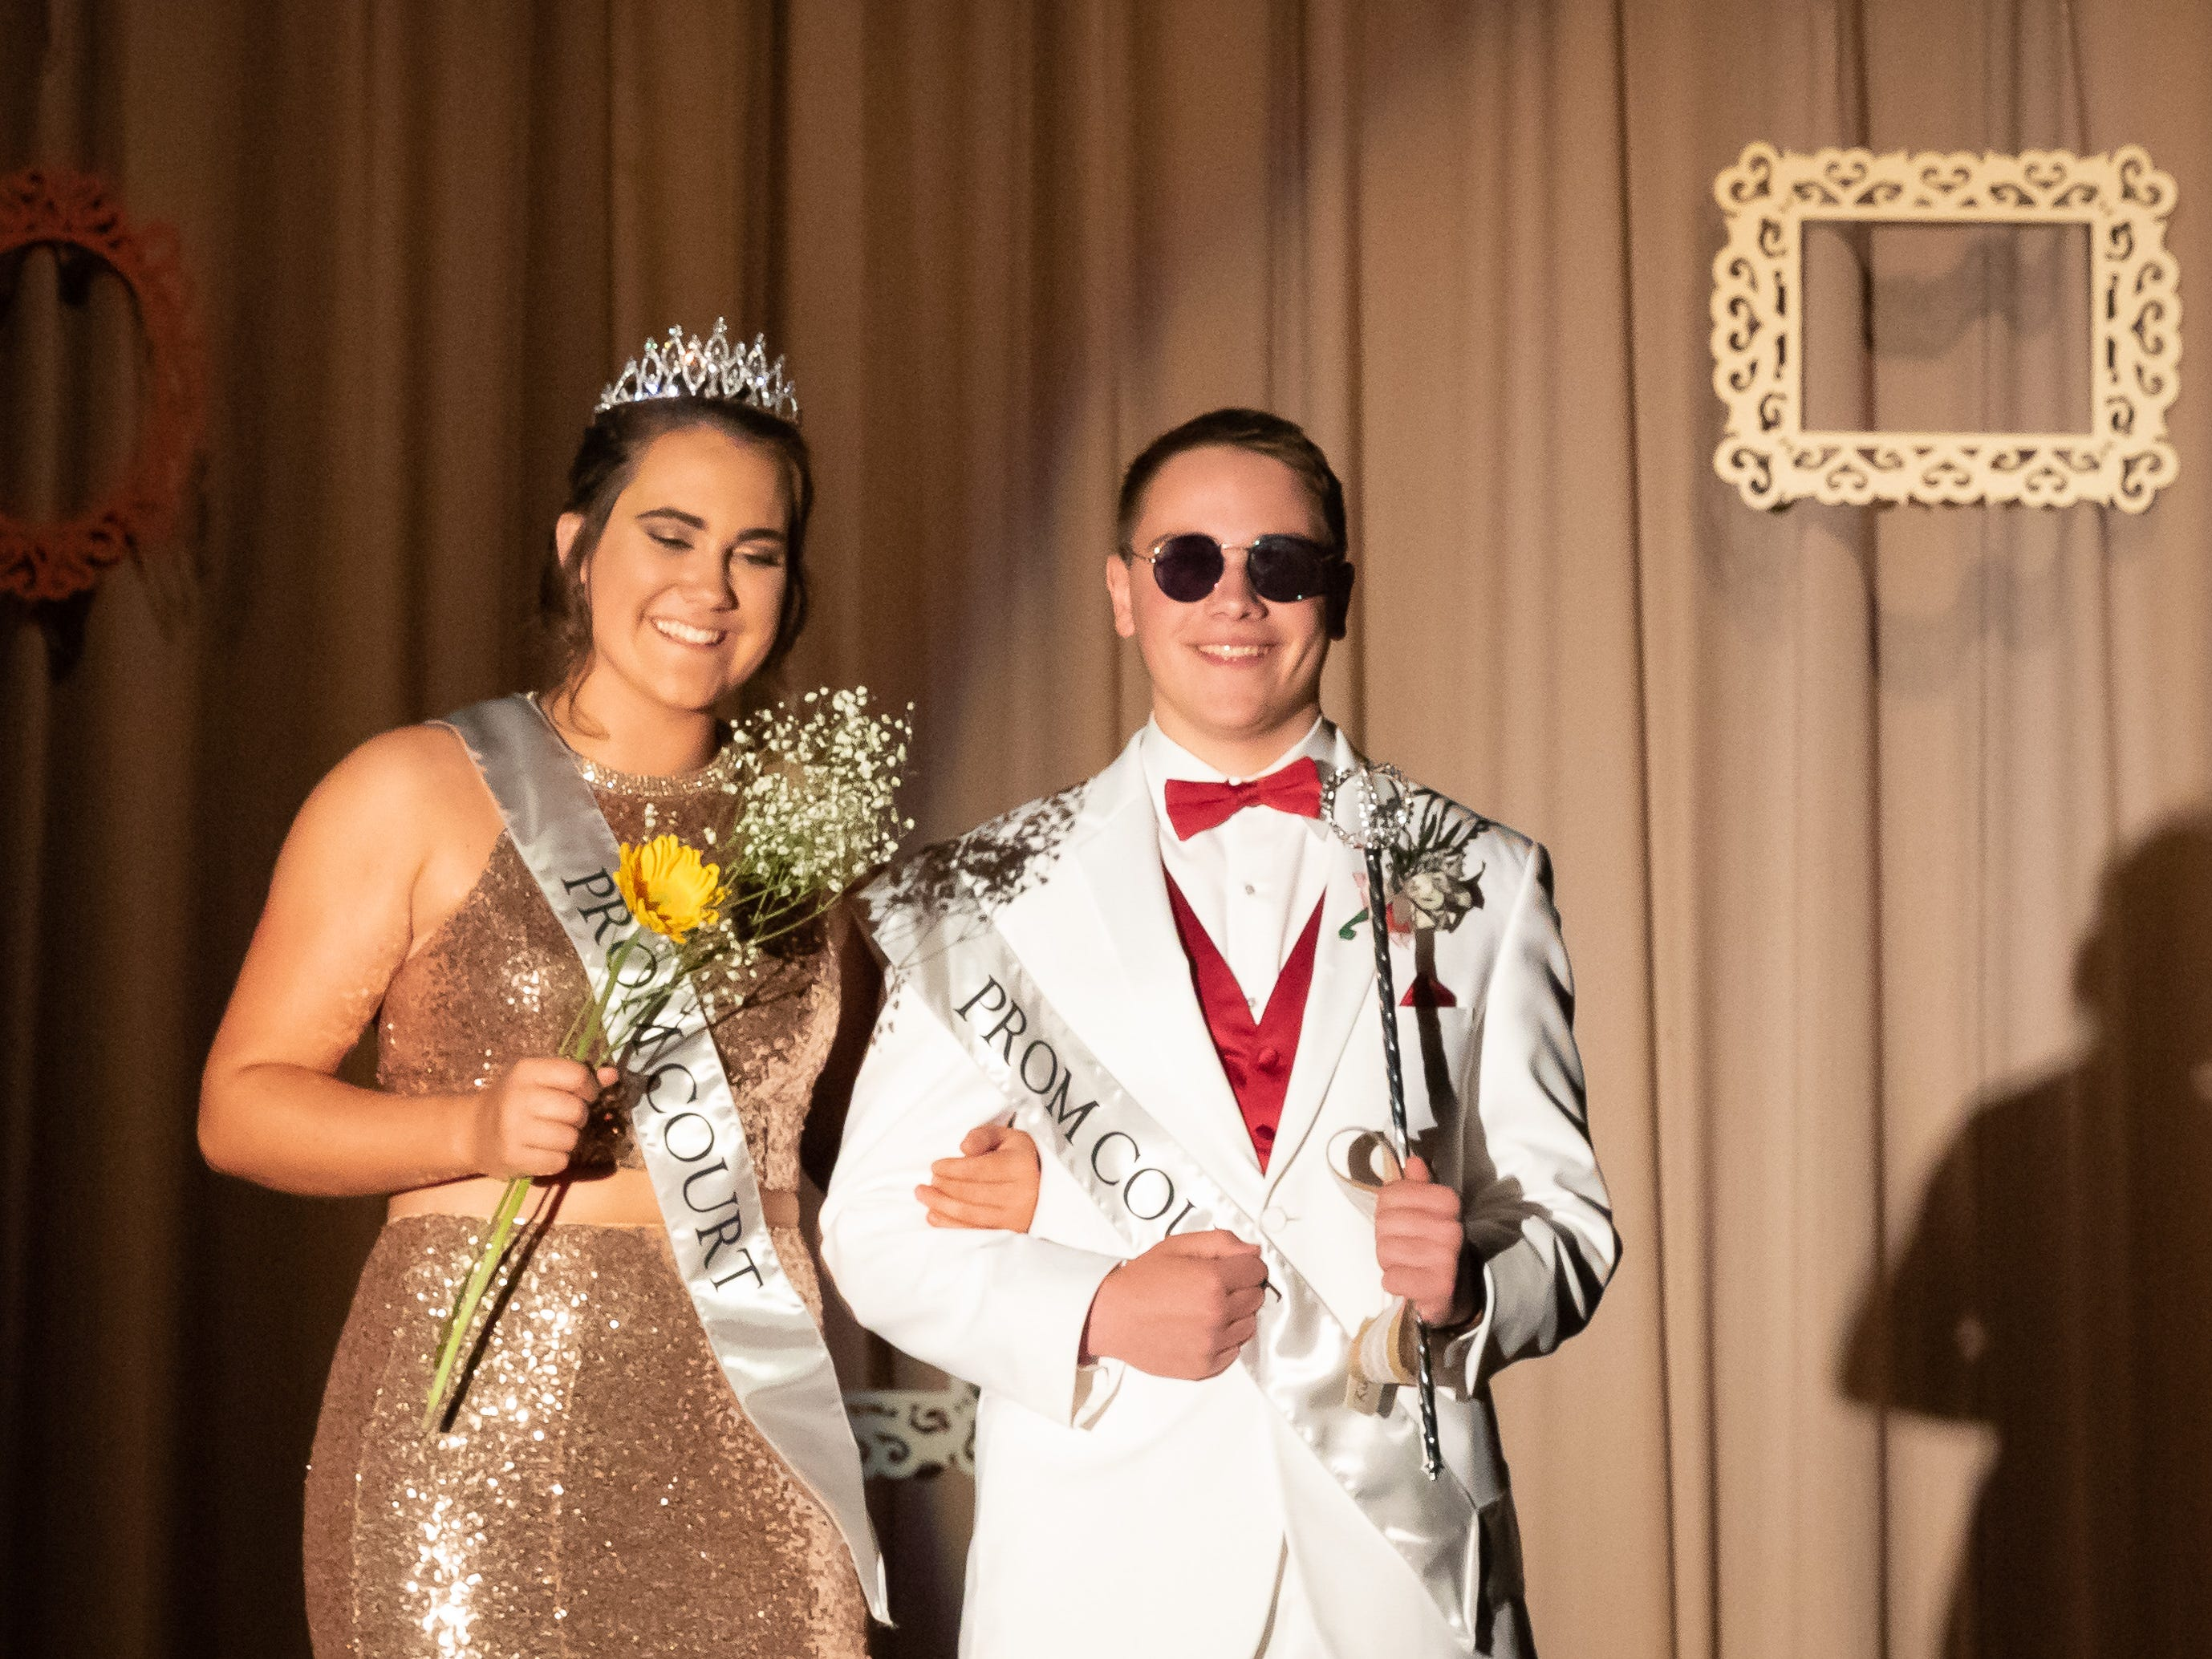 Calli Statz and Jaret Hartley were named prom queen and king during the Assumption High School prom on Saturday, April 27, 2019, at the high school in Wisconsin Rapids.